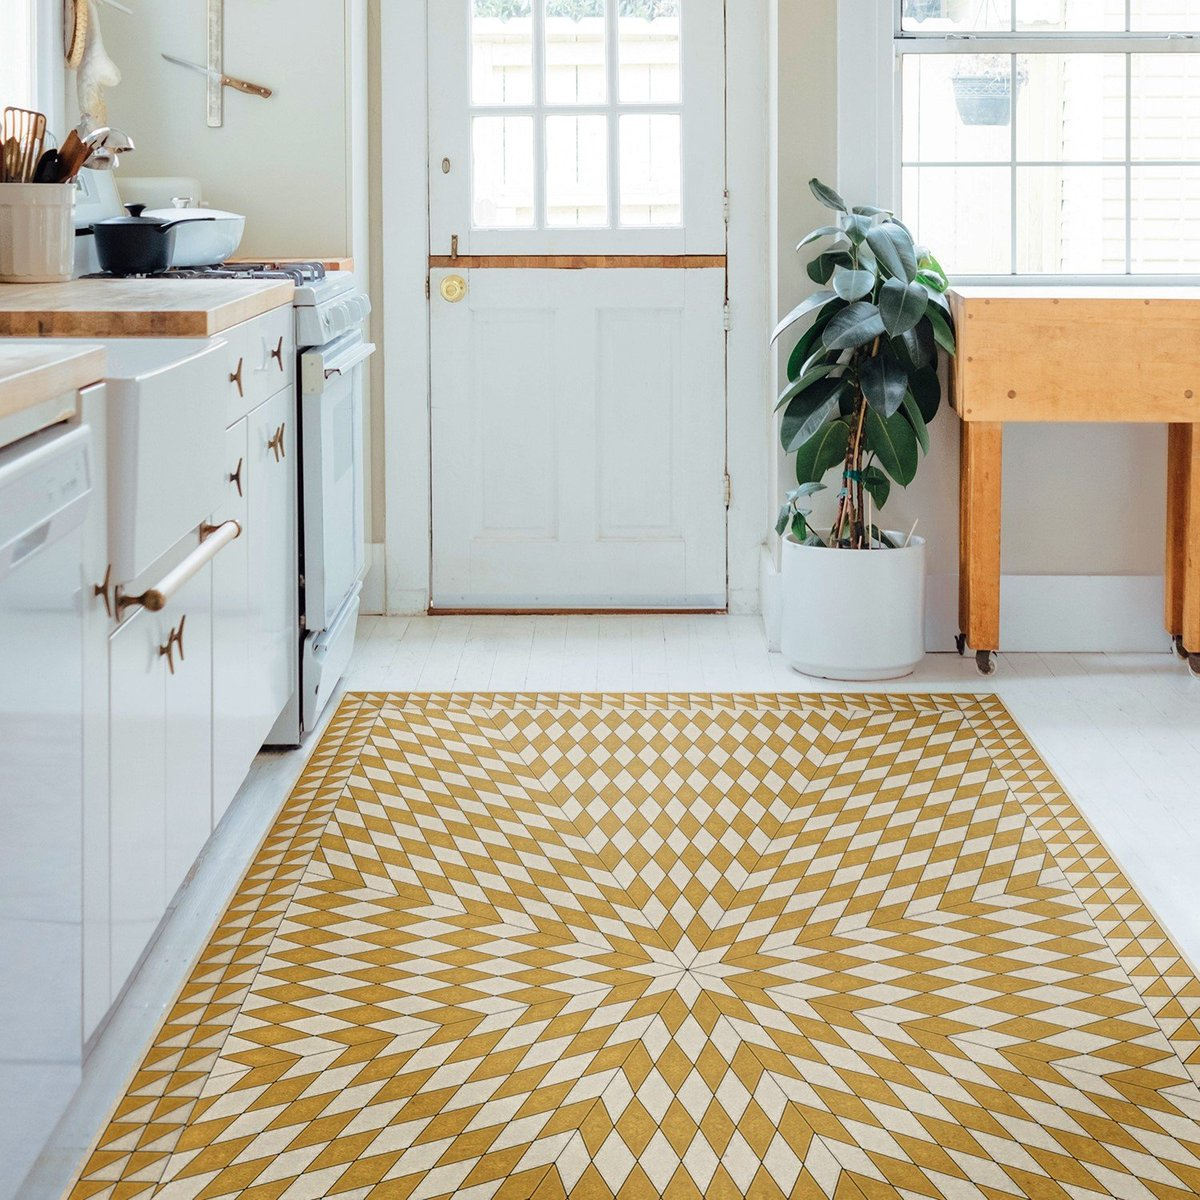 Mid-Century Retro vibes with kitchen rugs